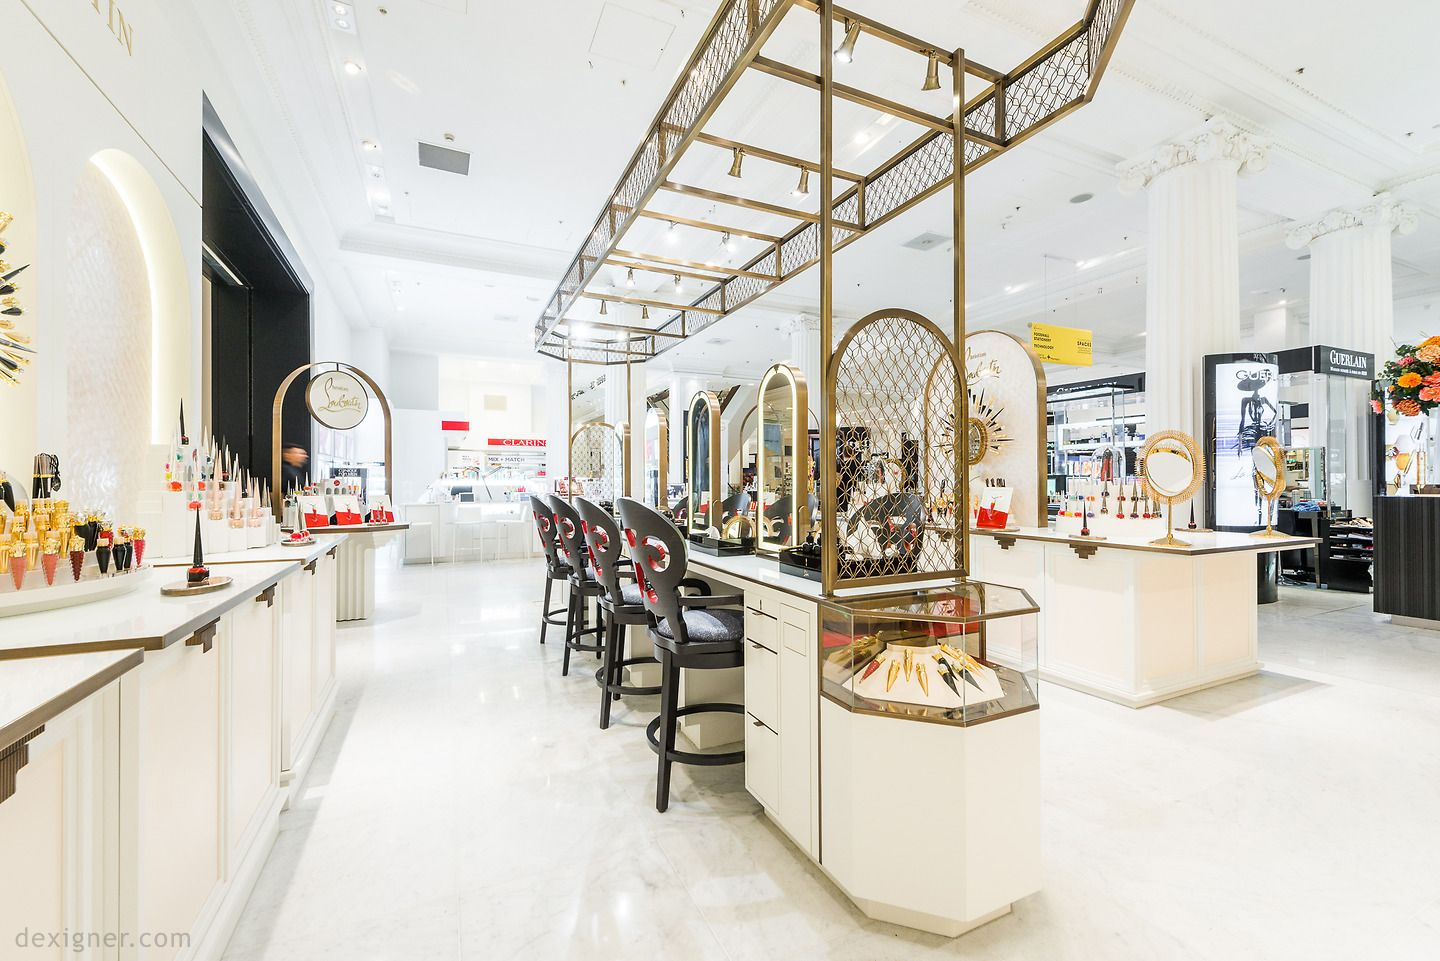 Related image Pinterest Kiosk and Interiors